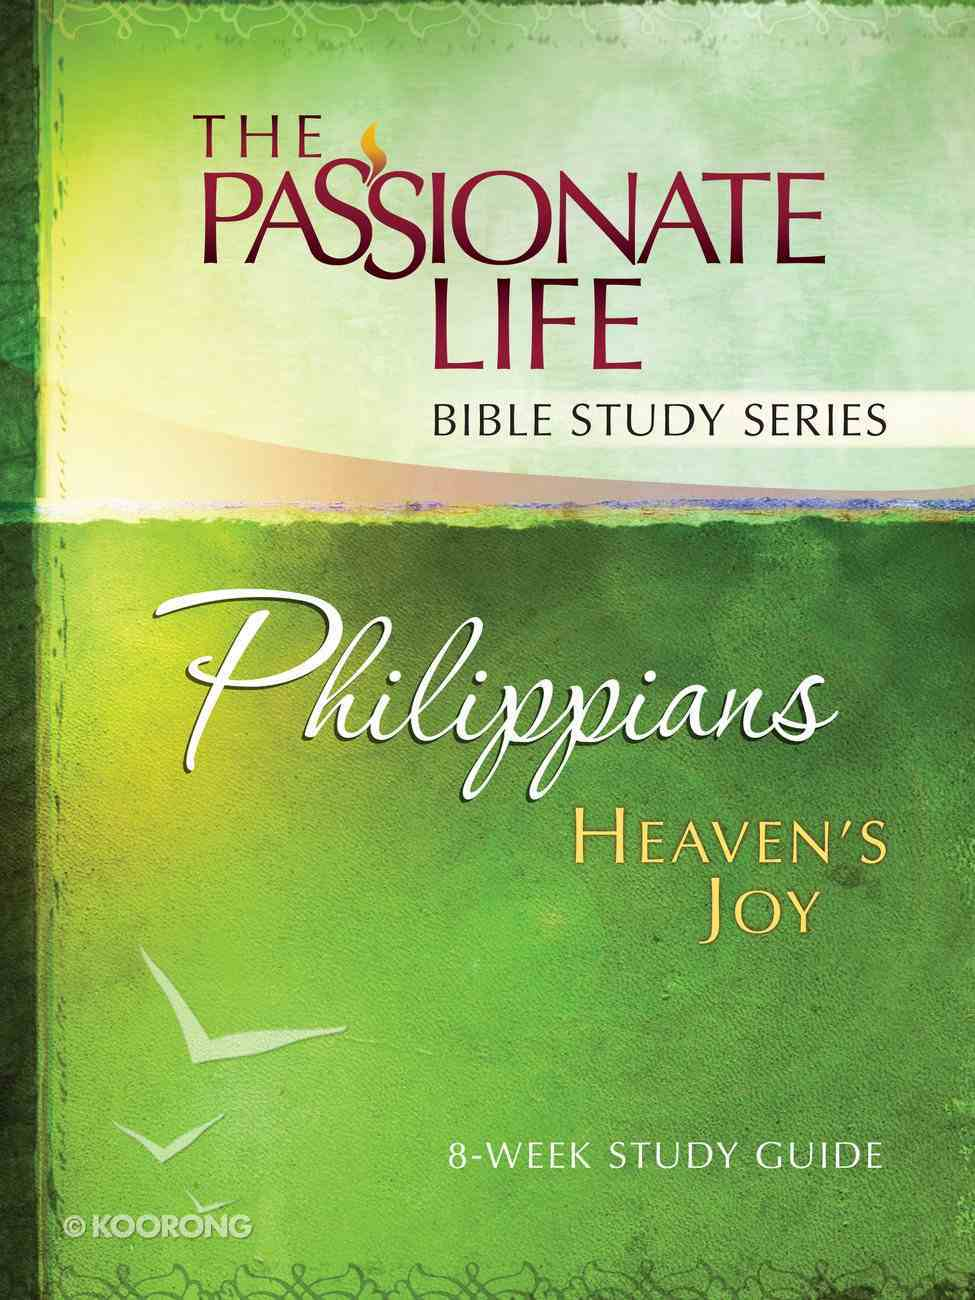 Philippians - Heavens Joy (The Passionate Life Bible Study Series) Paperback